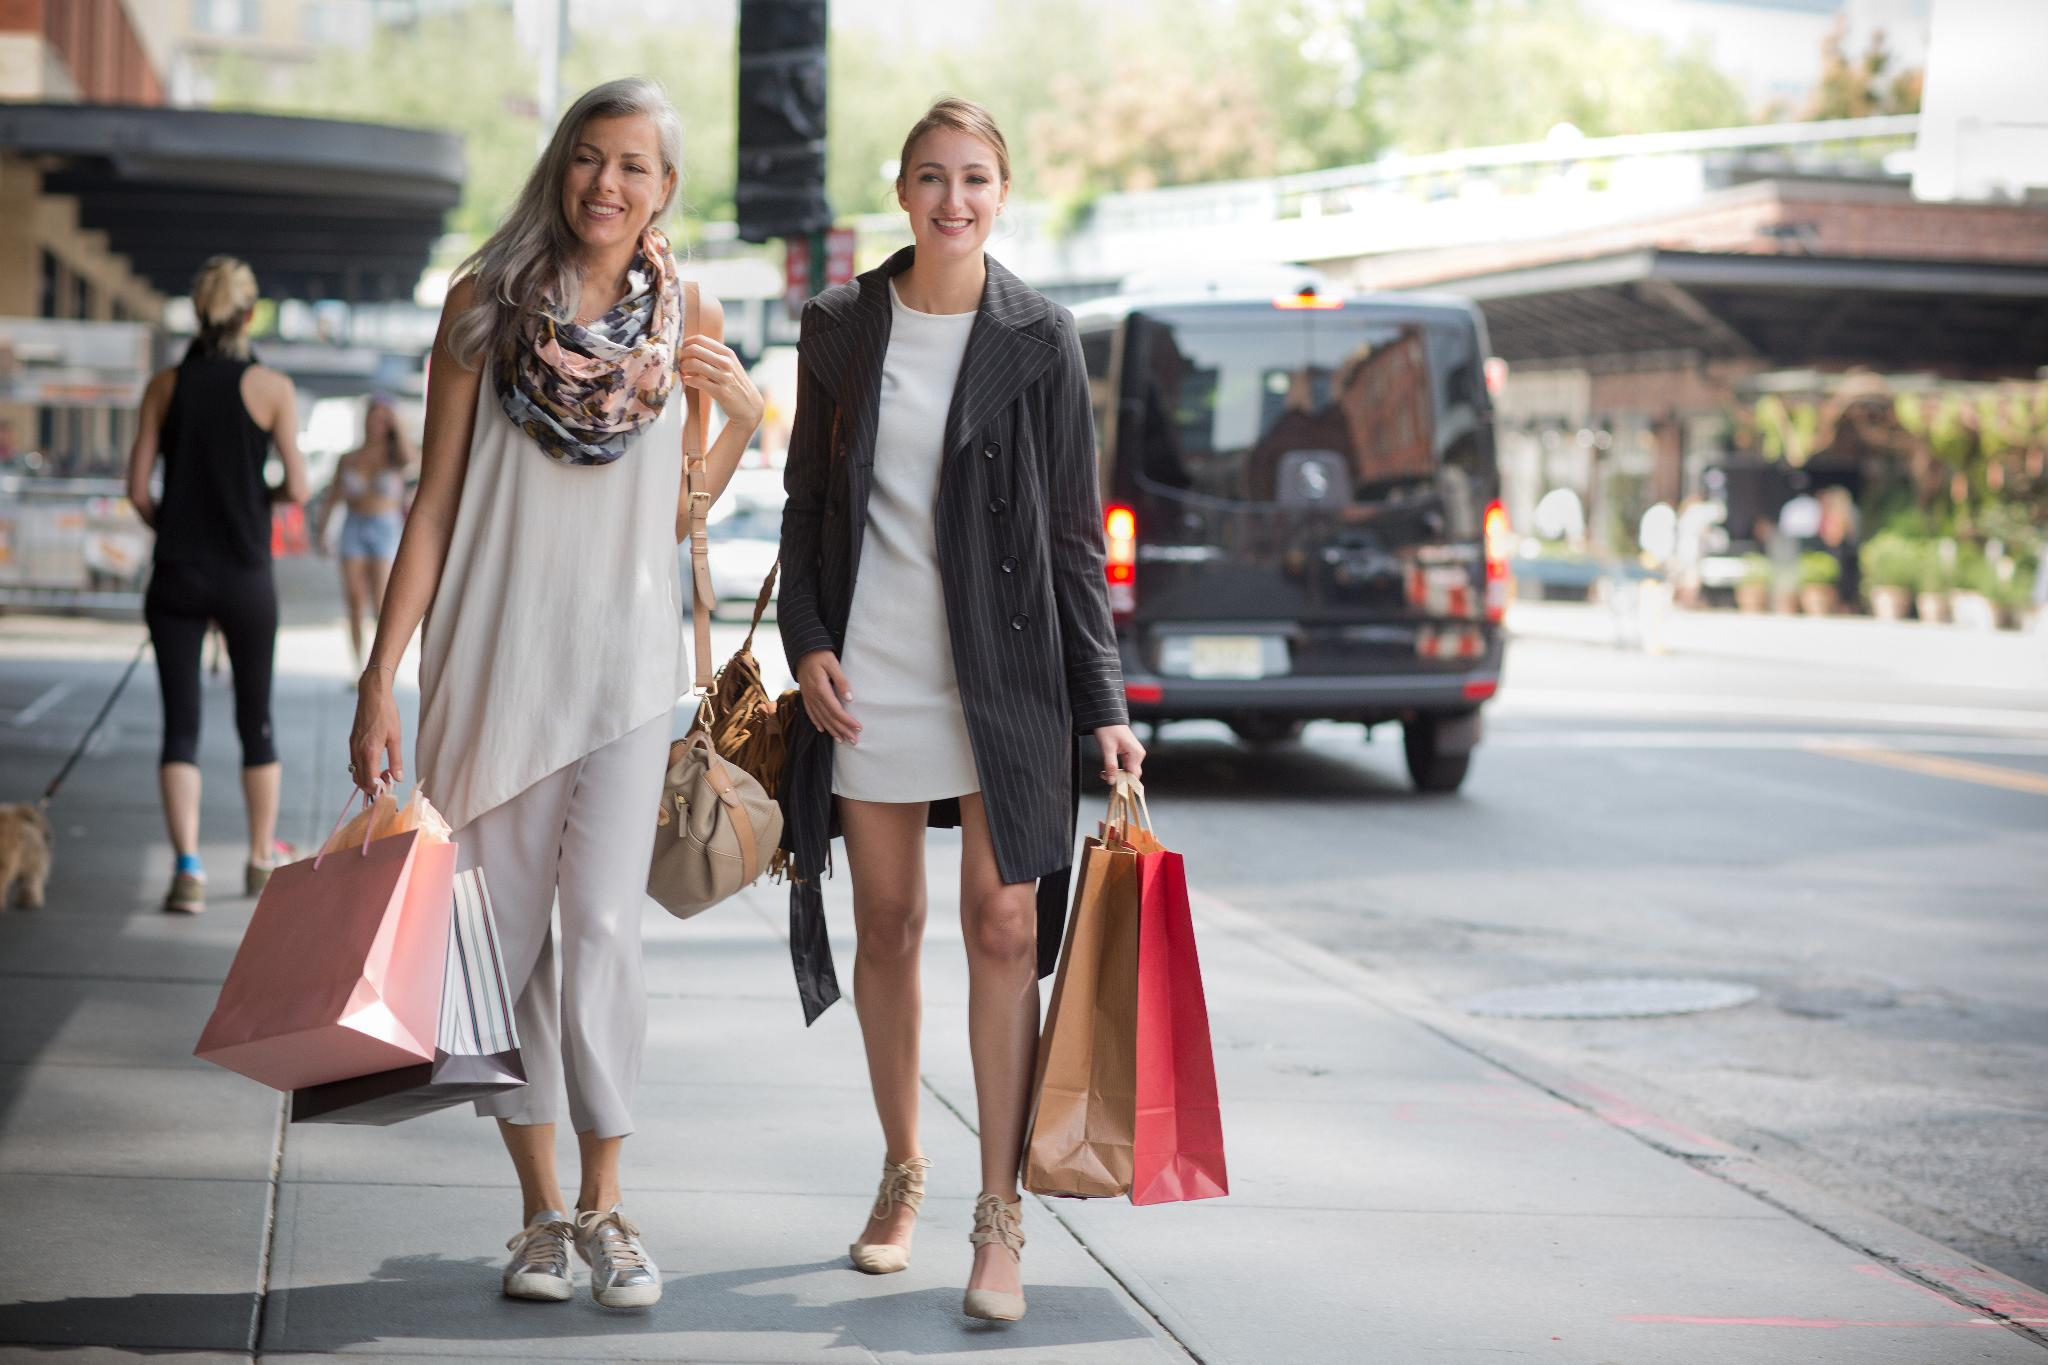 two women outdoors walking the streets holding large shopping bags